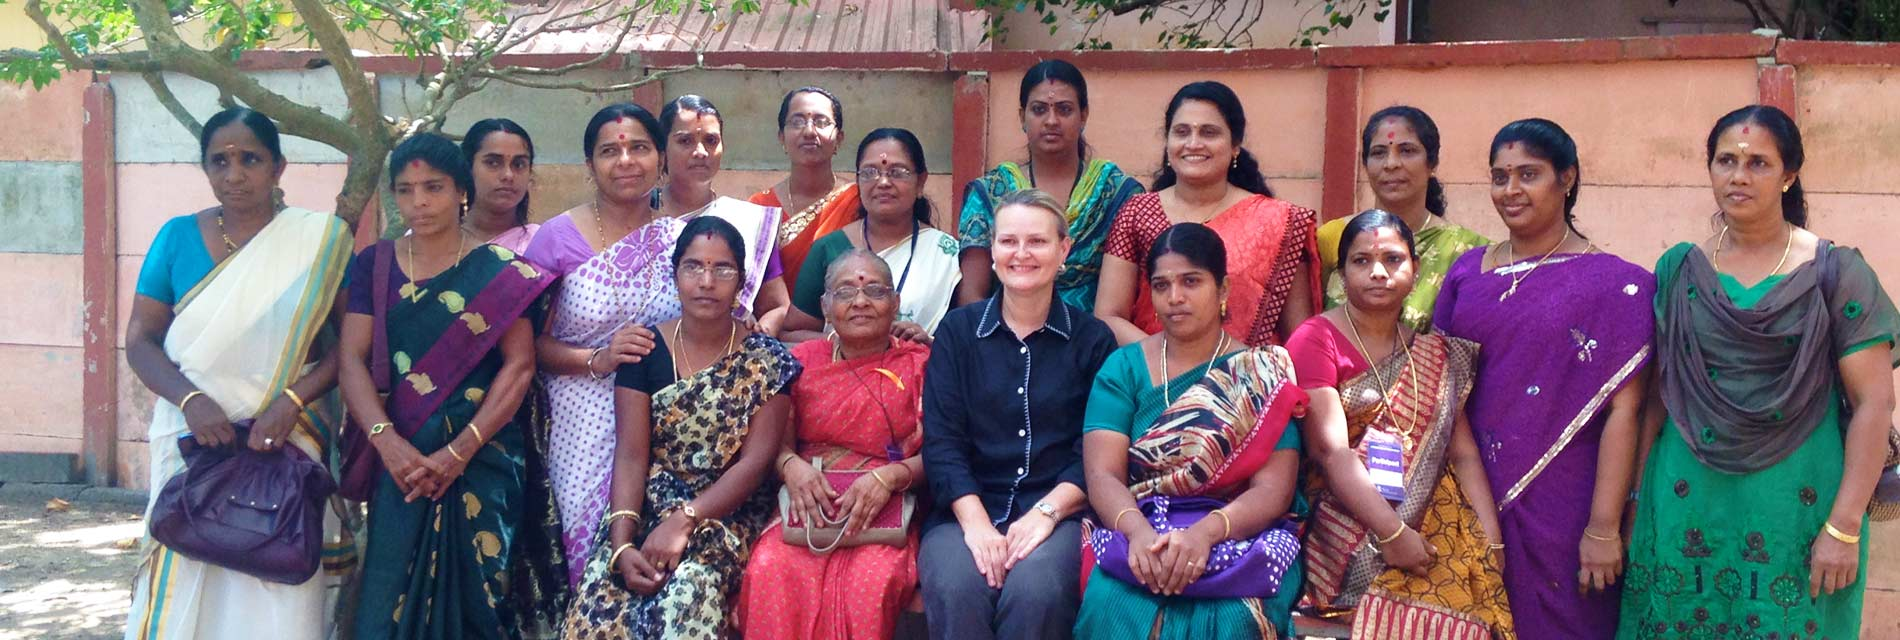 Empowering Women & Communities